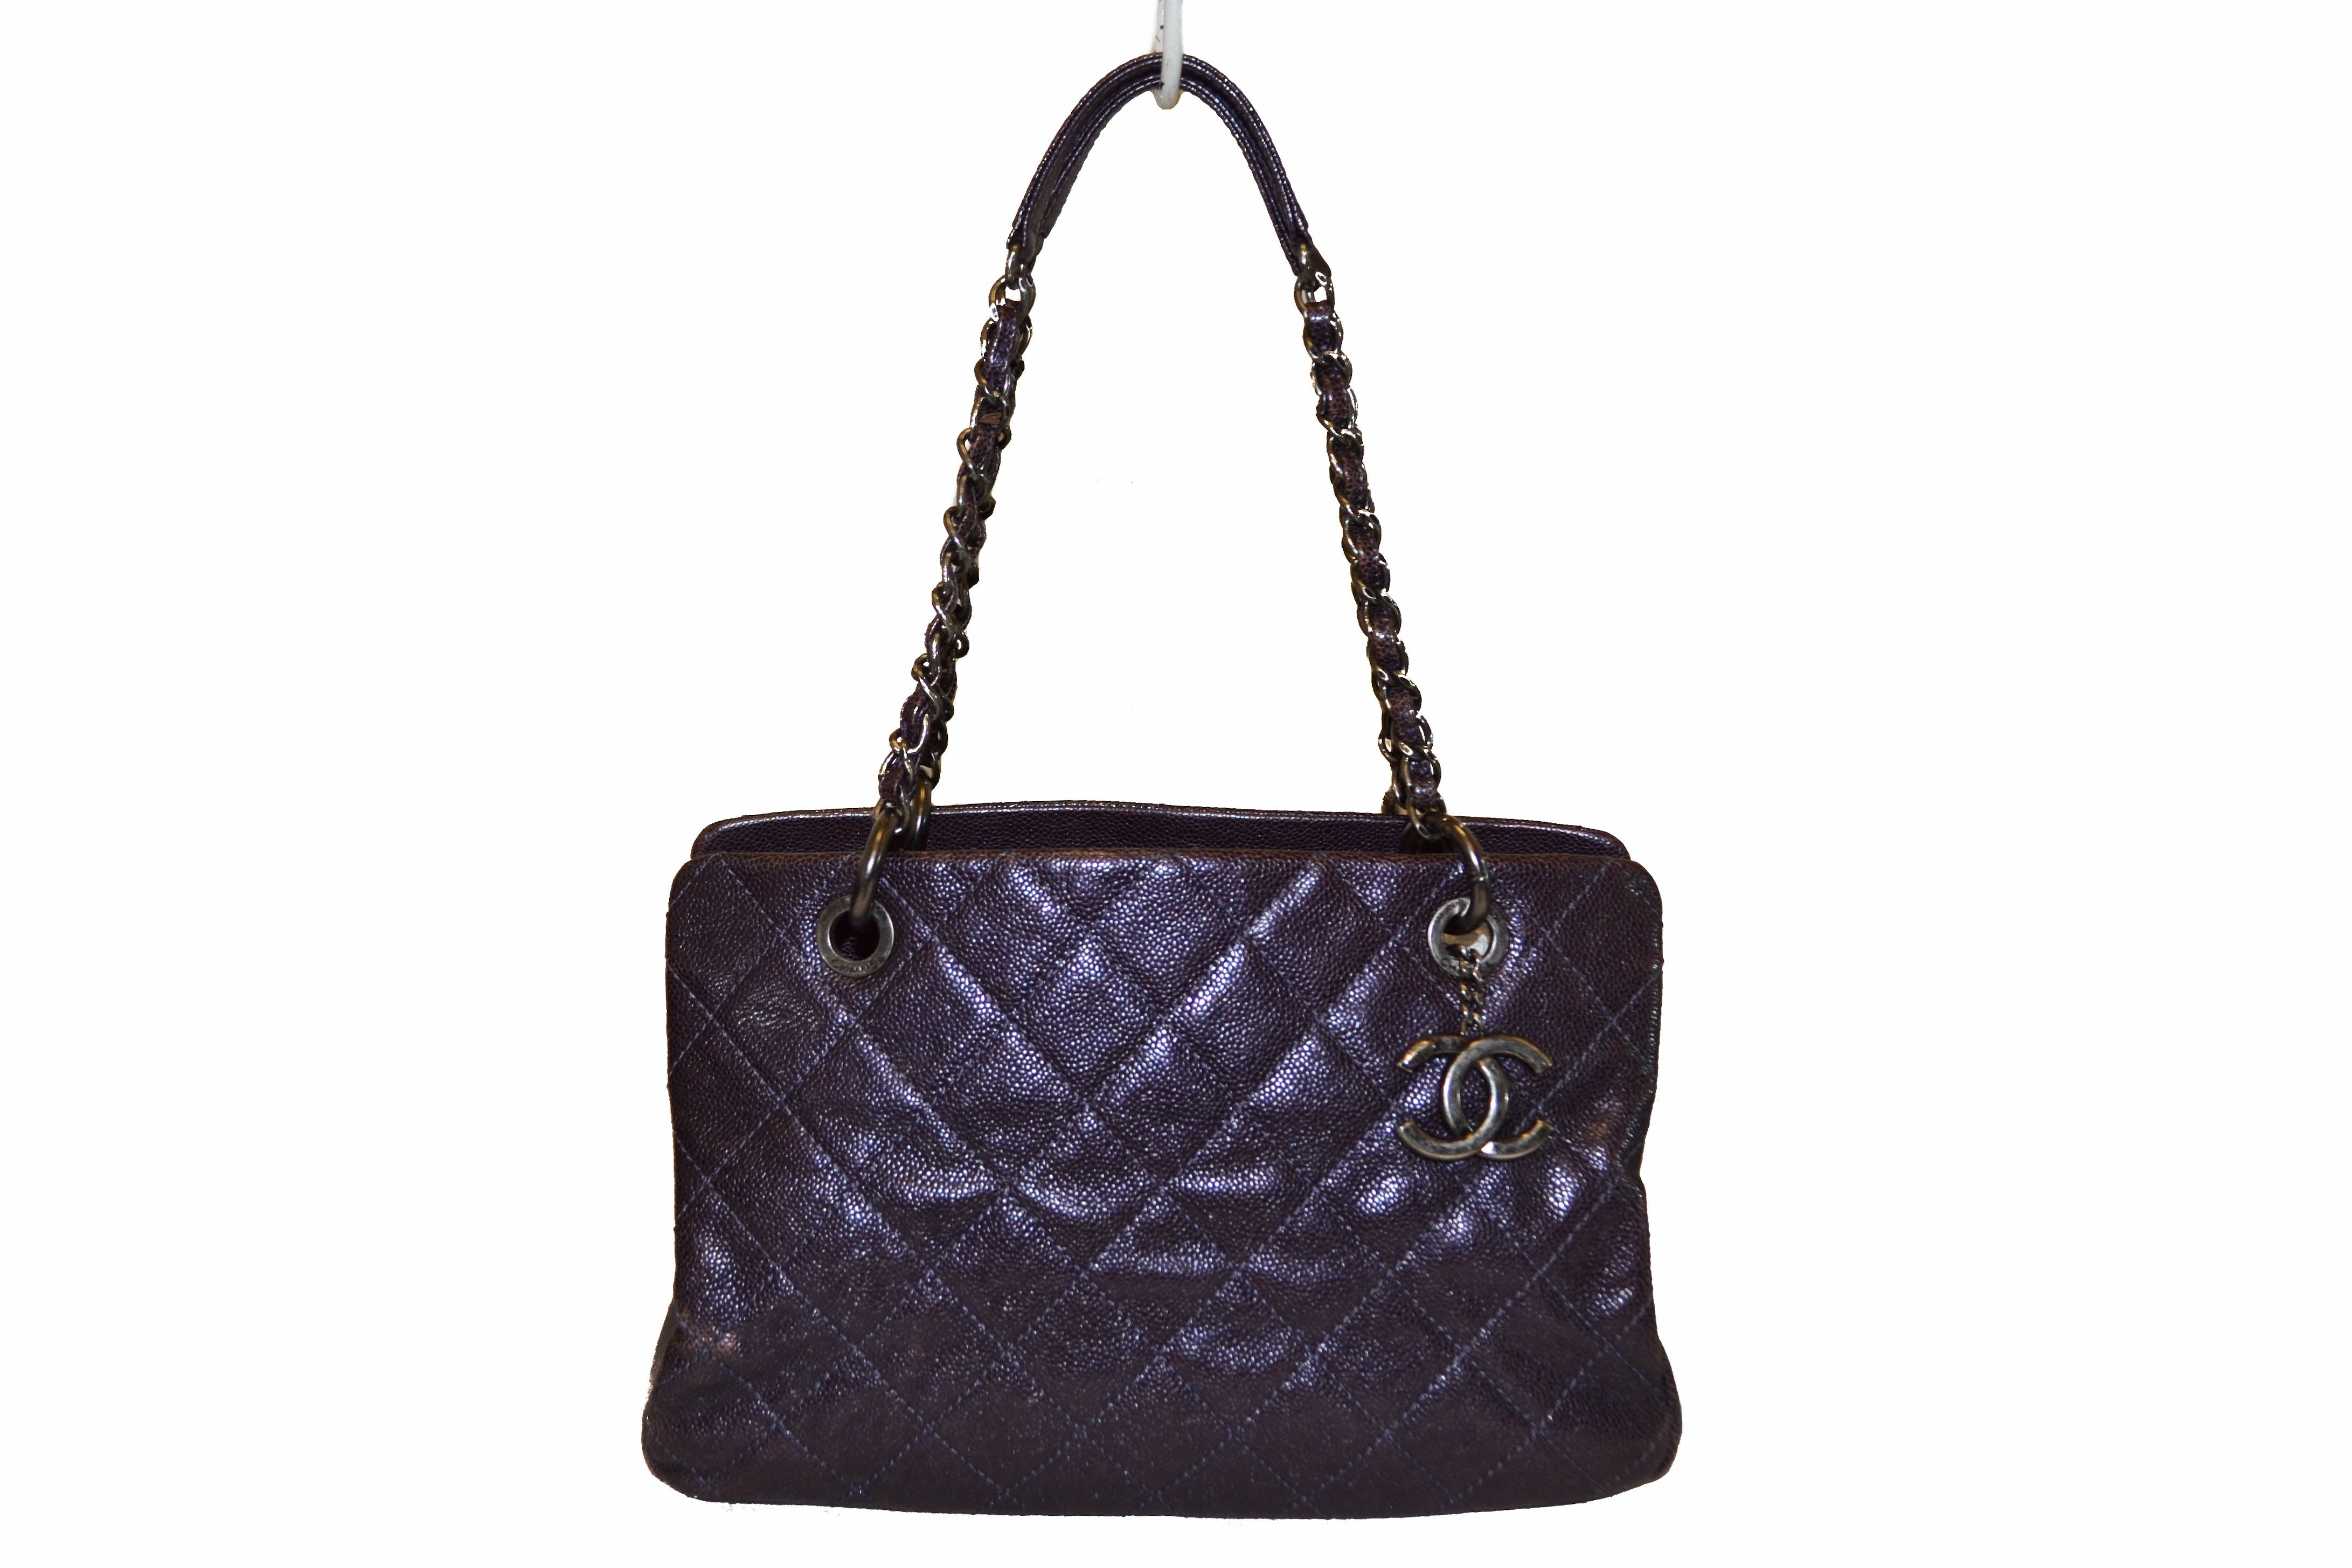 Authentic Chanel Quilted Caviar Leather Metallic Purple Shoulder Bag